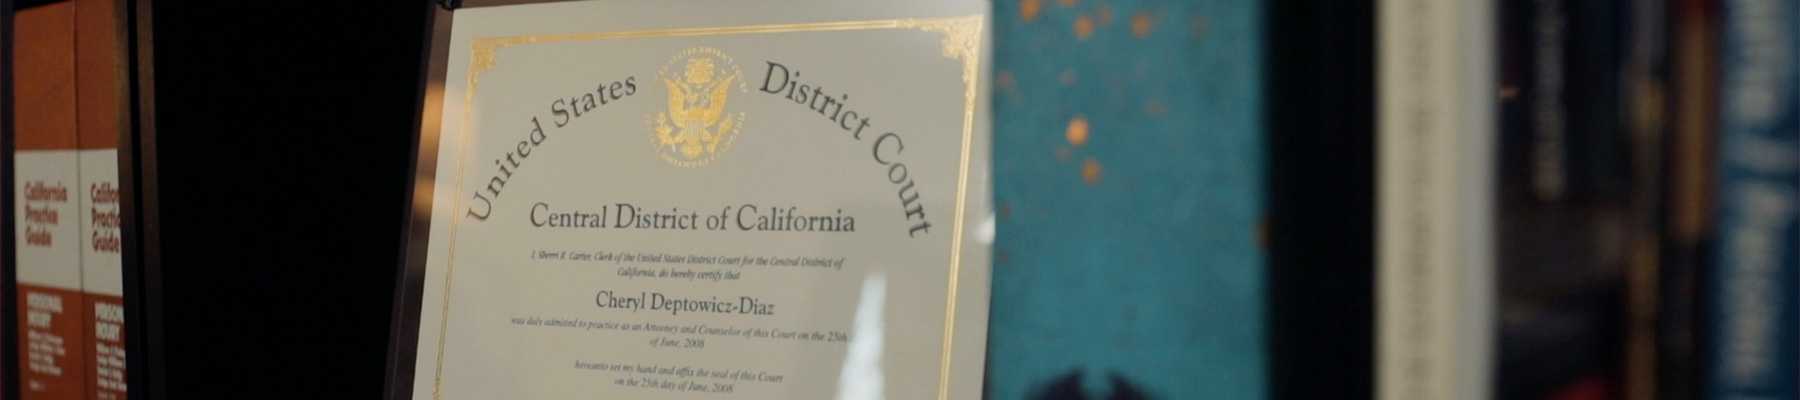 attorney cheryl deptowicz-diaz law certificates